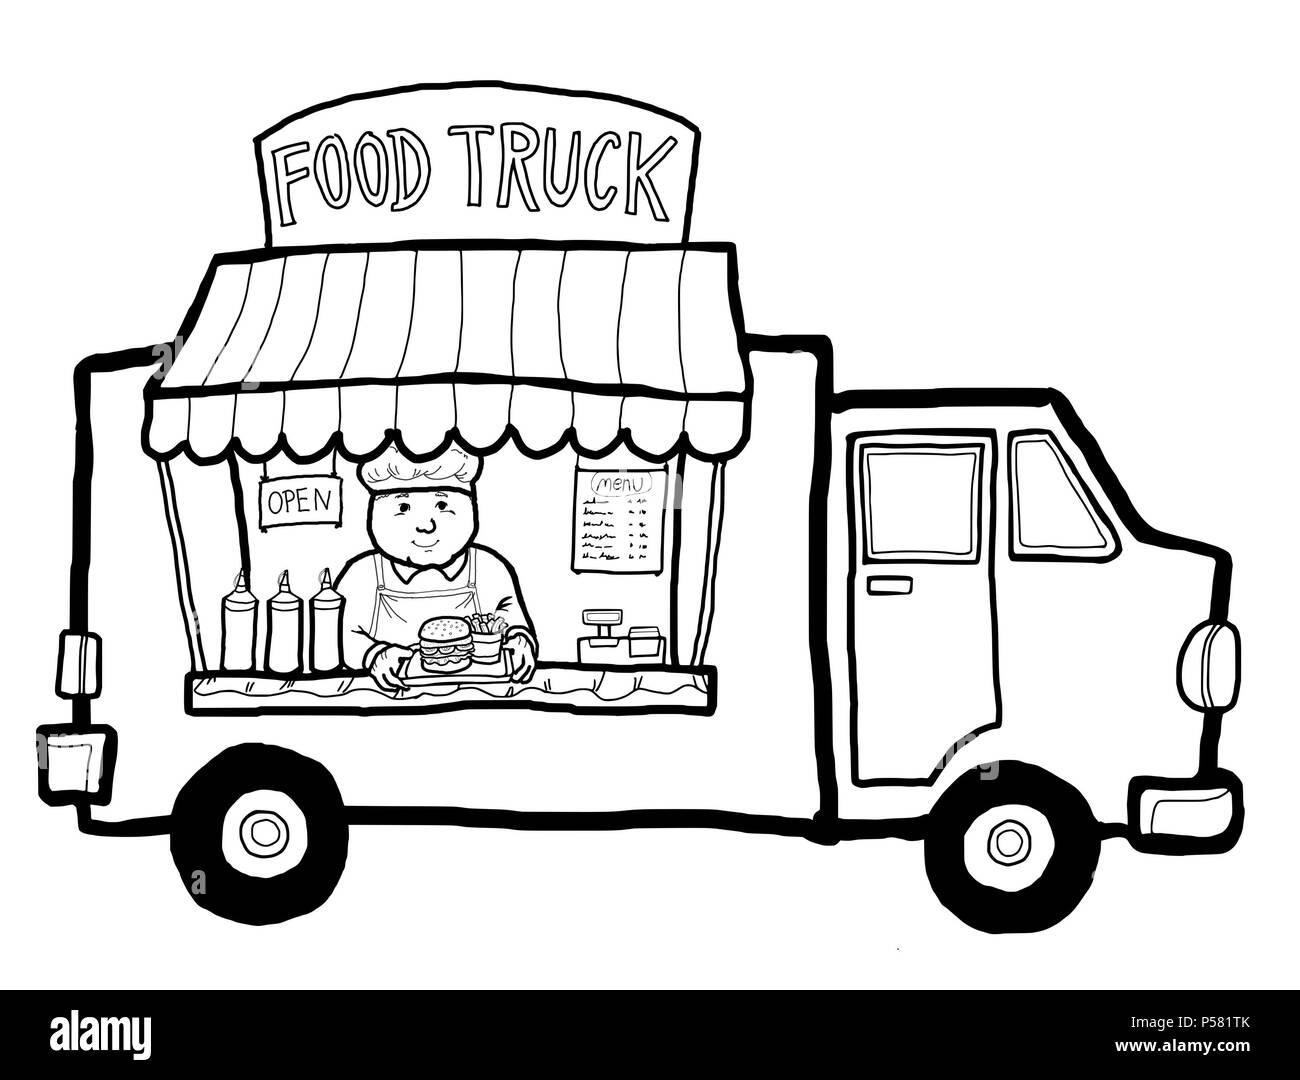 A Street Food Truck In The City Selling Take Away Food And Drink Hamburger Stock Photo Alamy